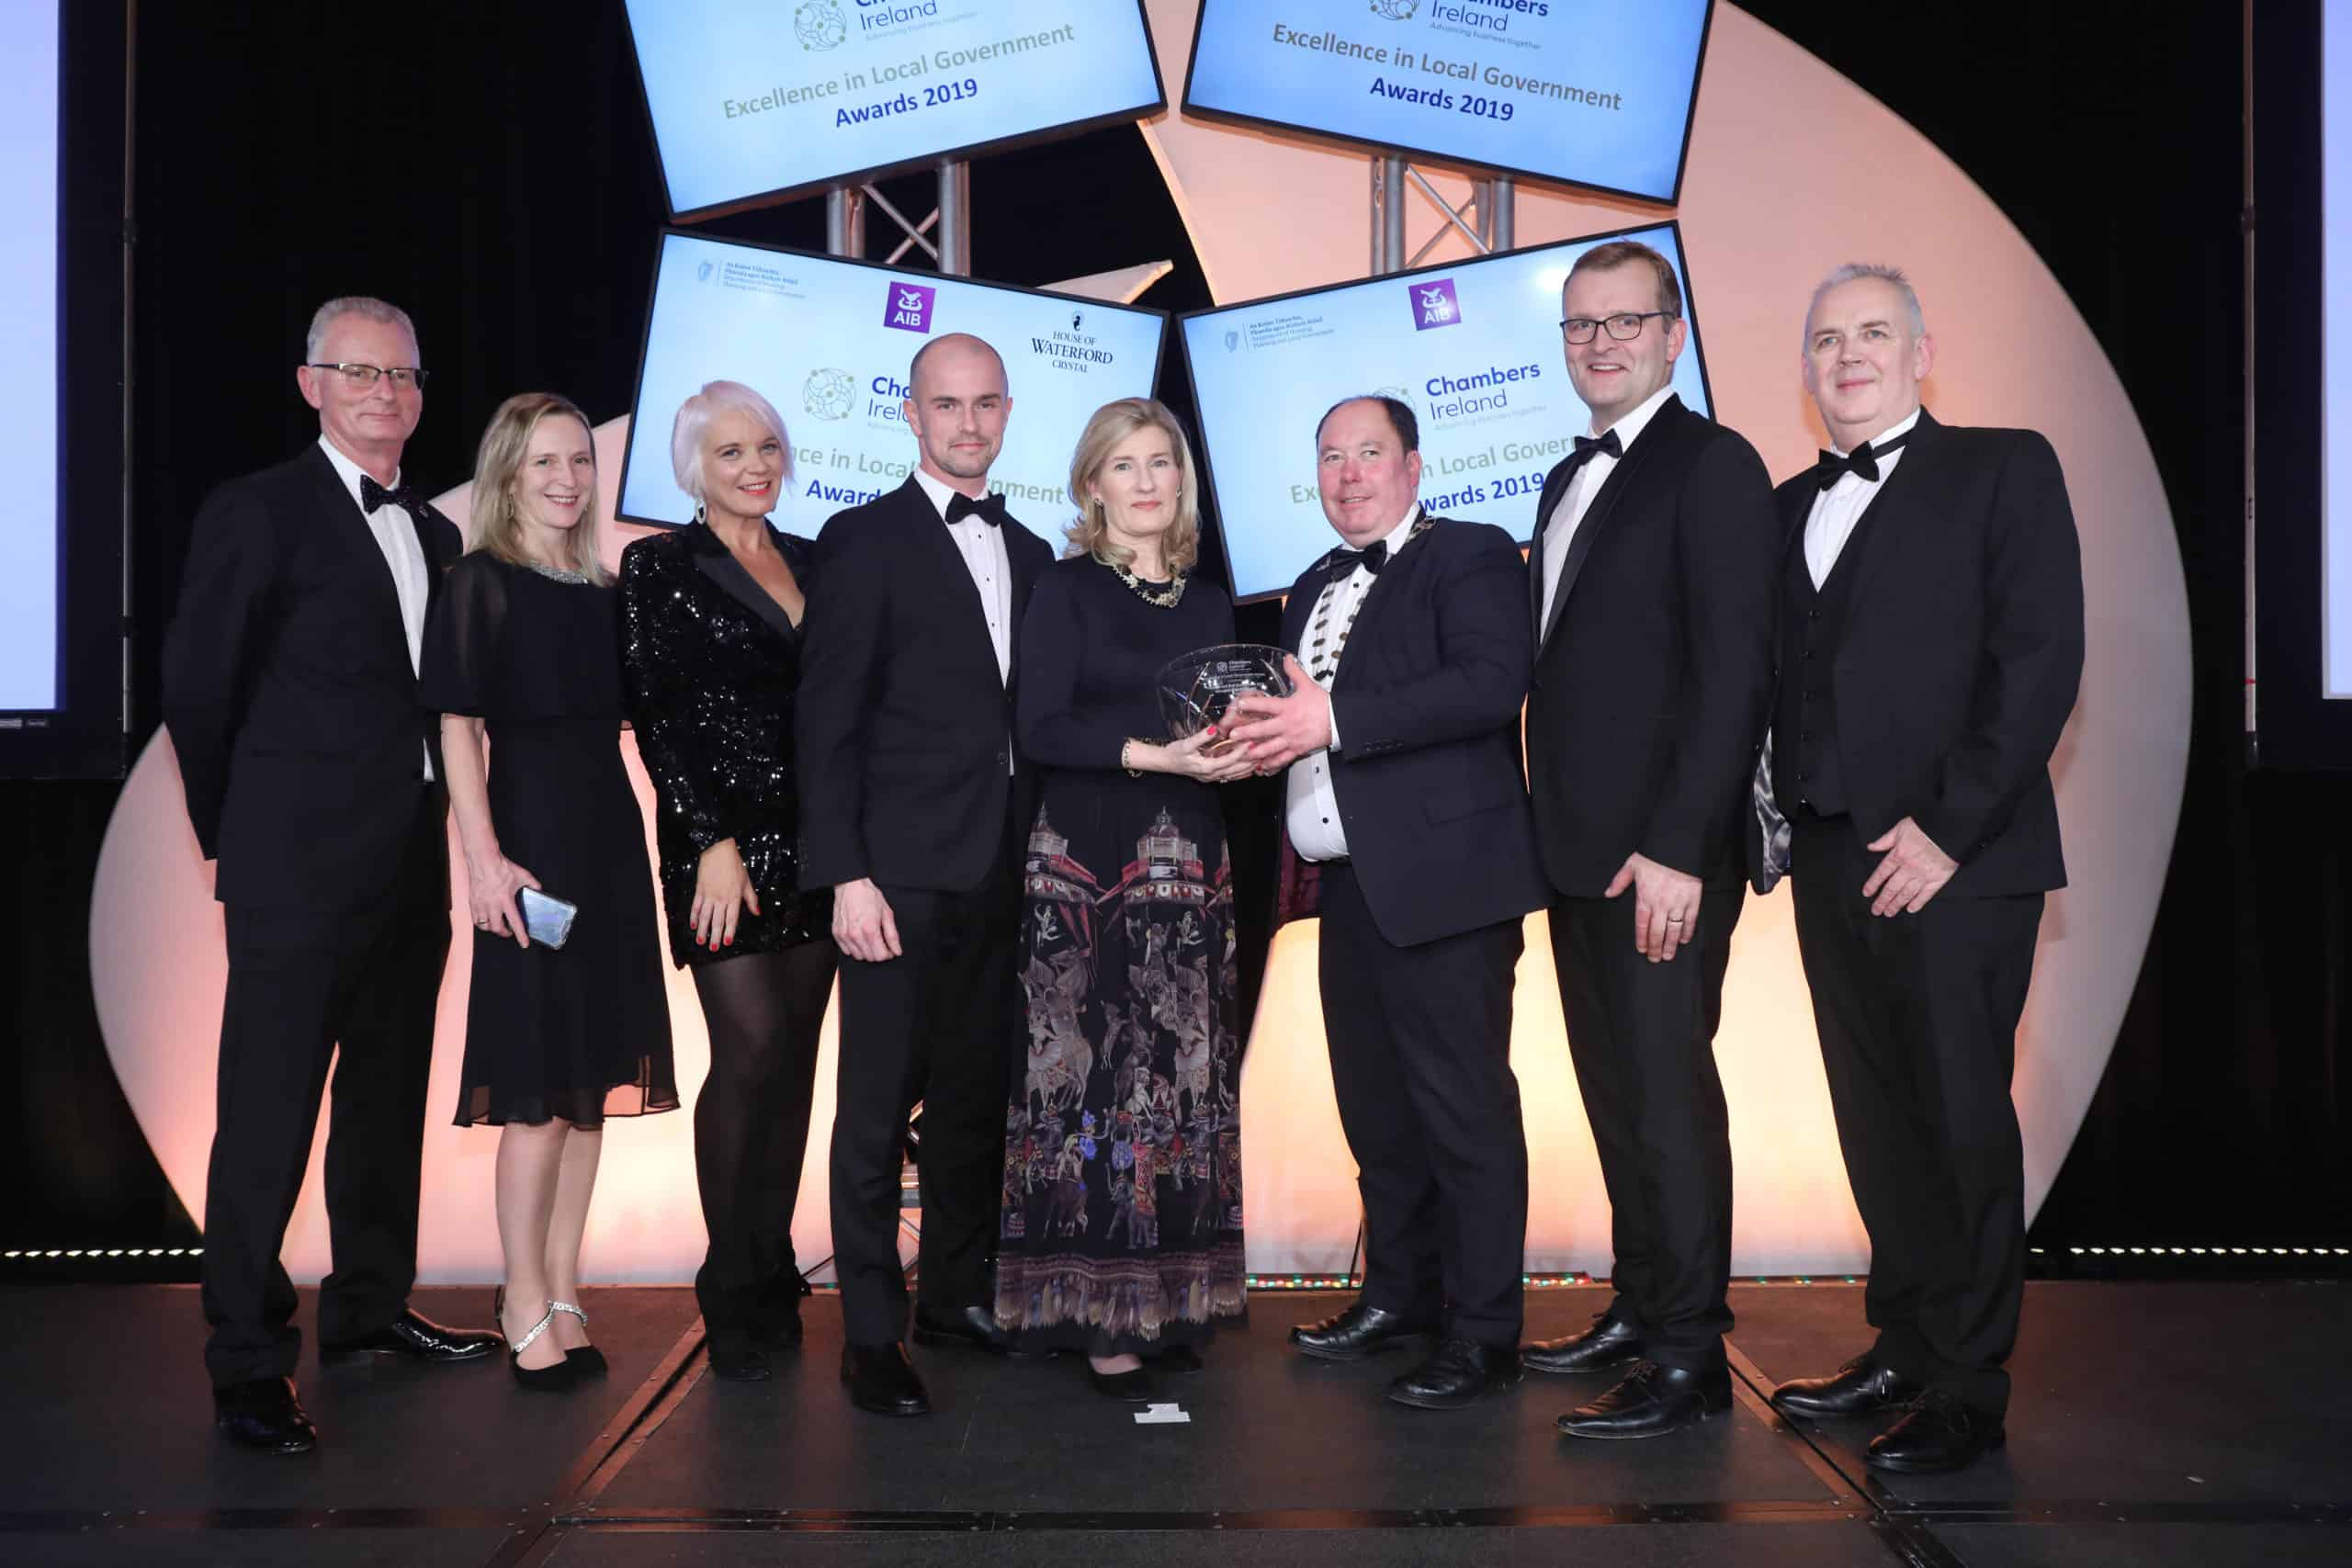 Monaghan County Council success at the 2019 Chambers Ireland Excellence in Local Government Awards